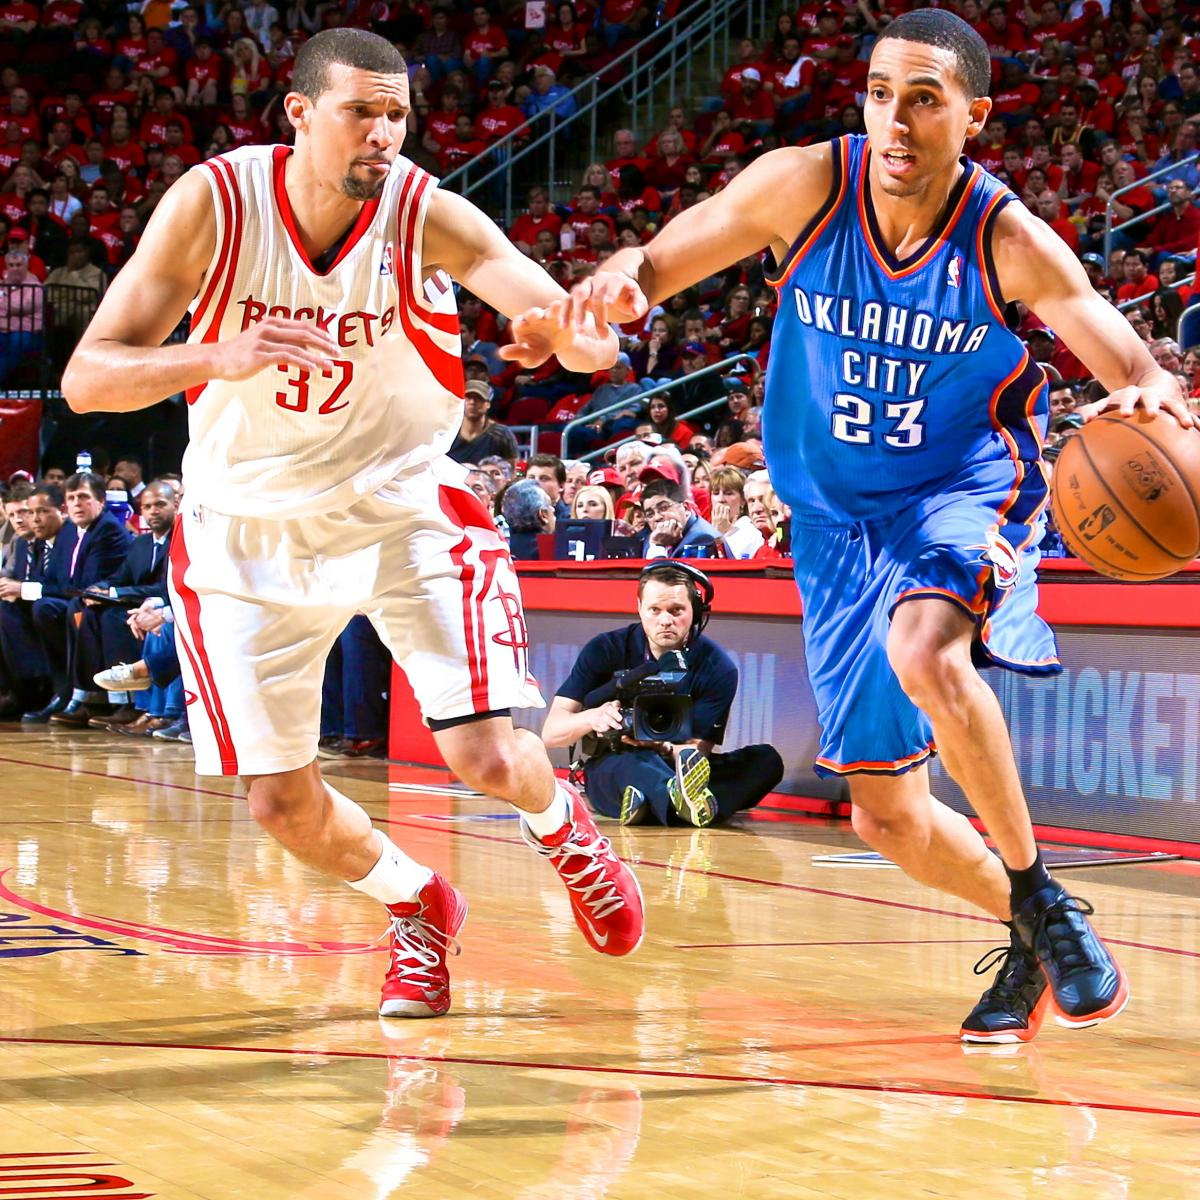 Houston Rockets Vs Okc: Houston Rockets Vs. OKC Thunder: Game 6 Score, Highlights